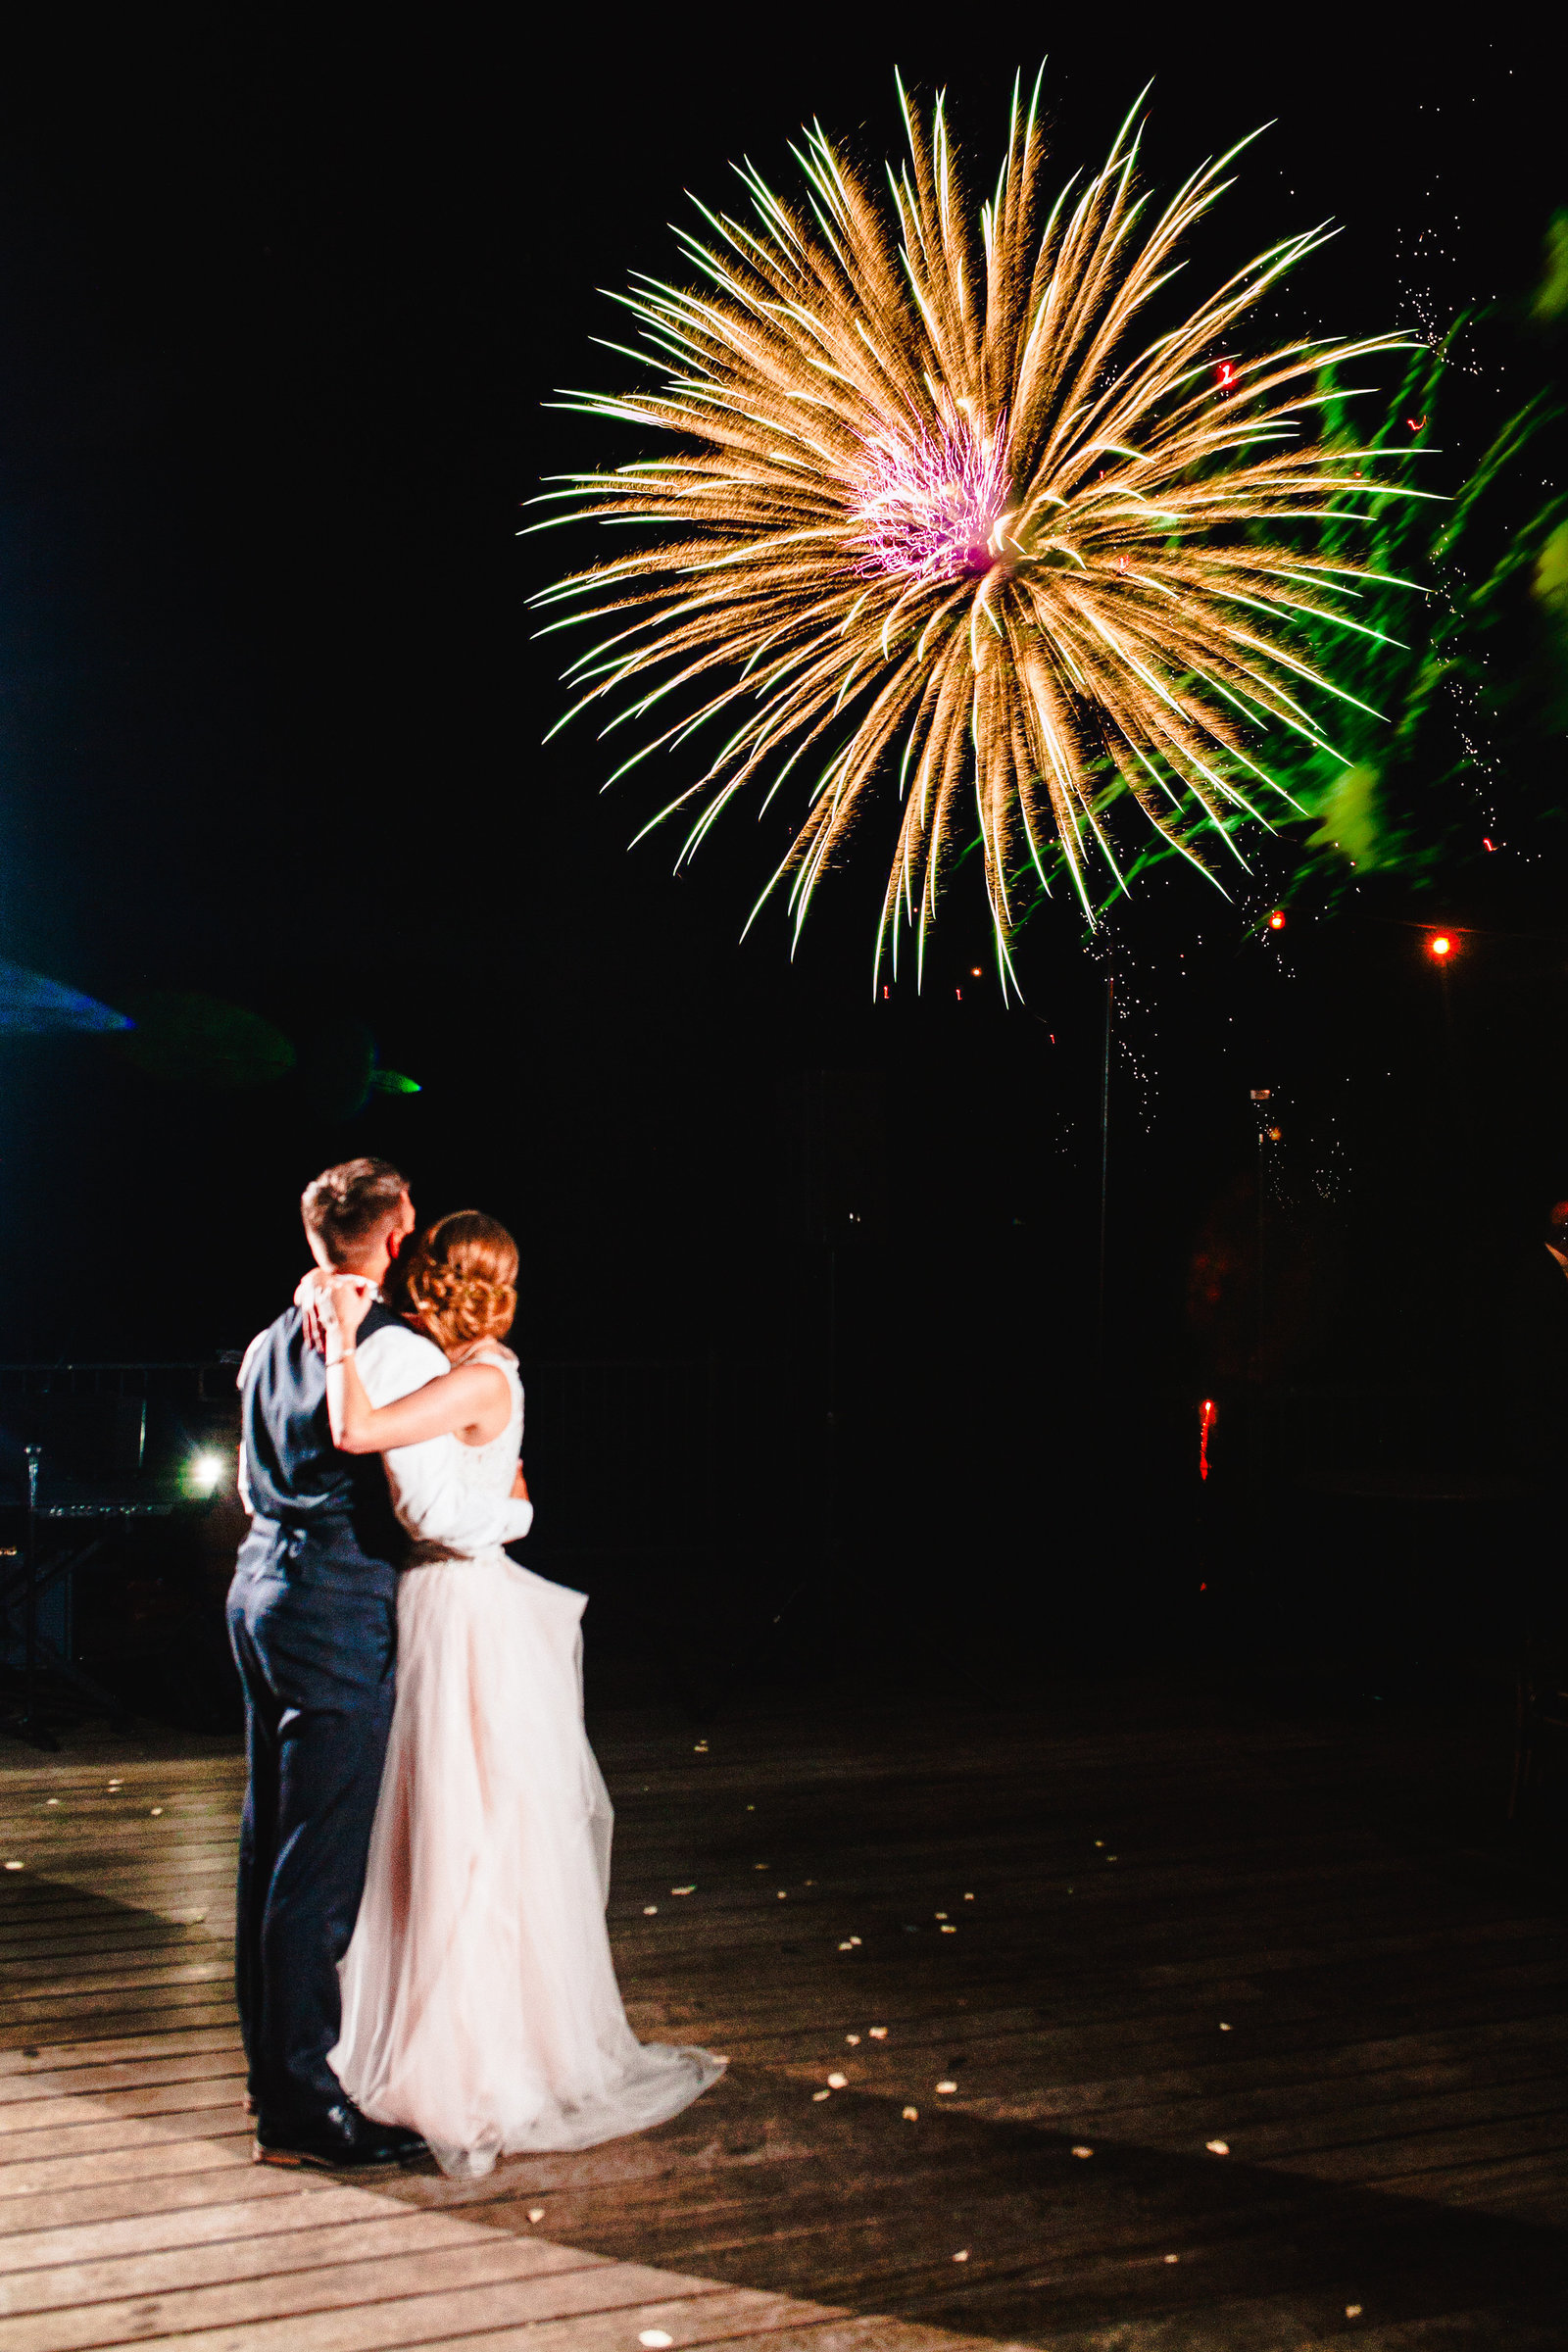 wedding couple on dance floor looking at fireworks in sky St Louis Pinxit Photo